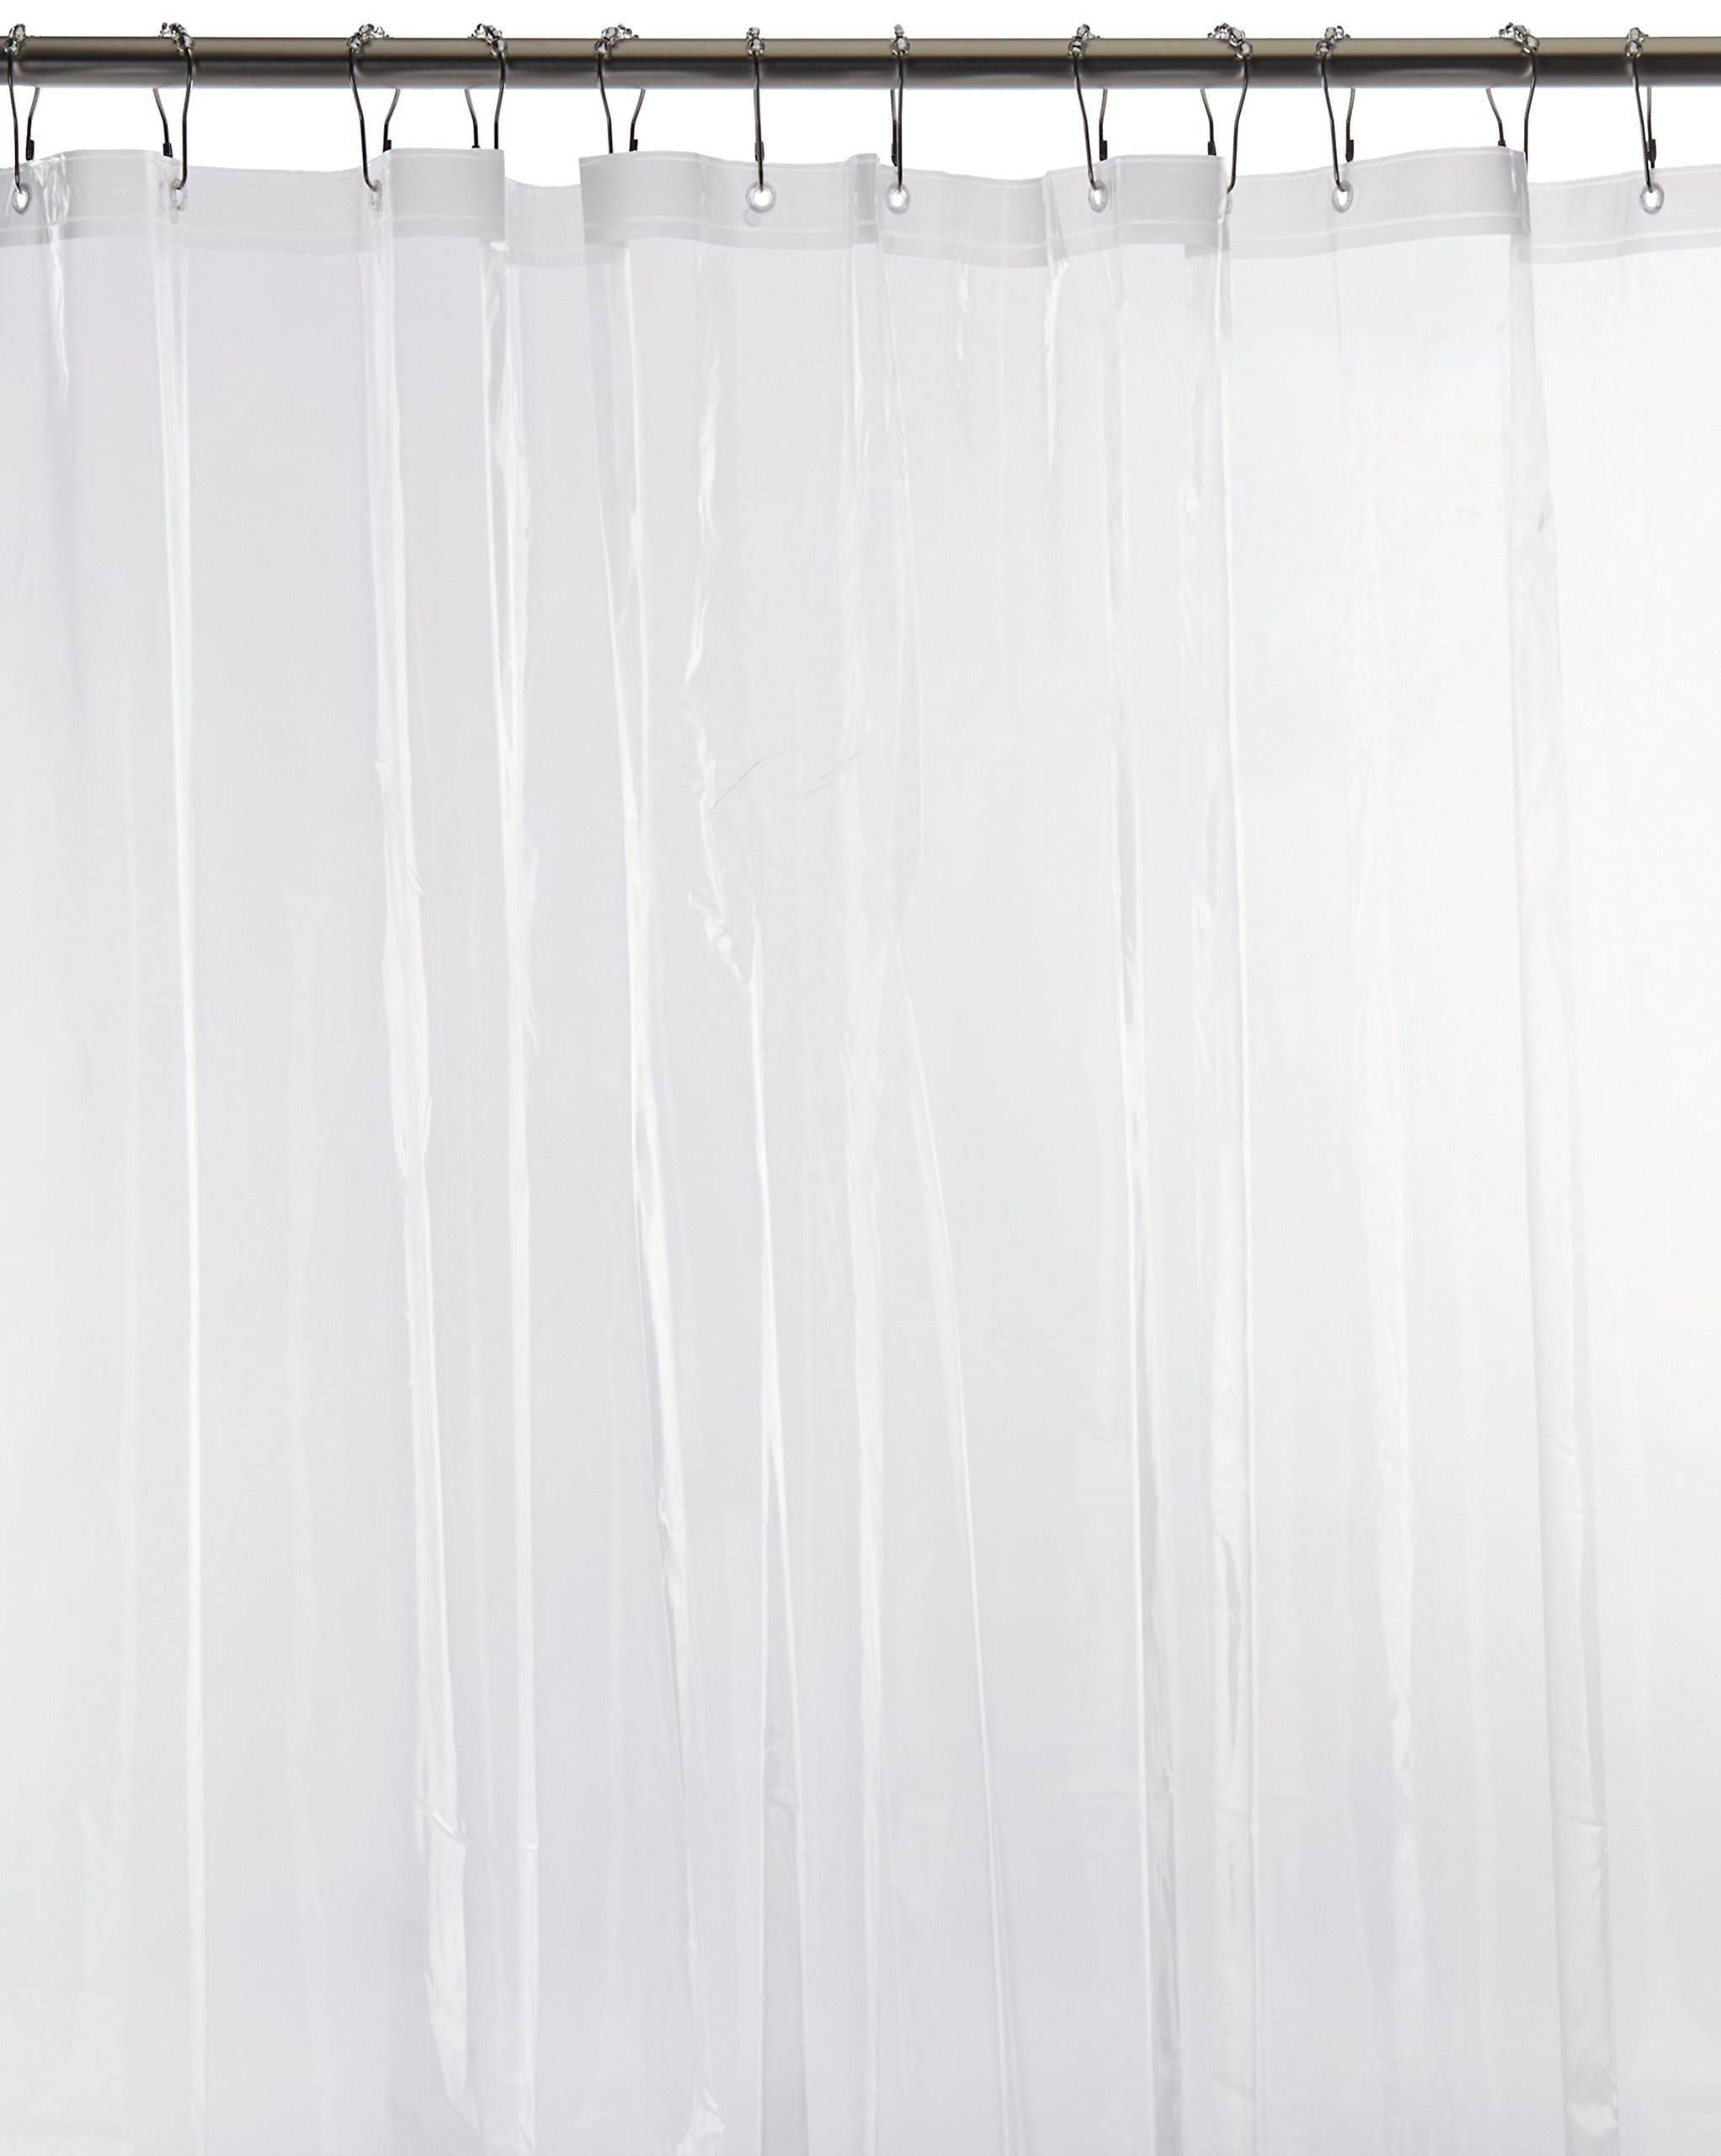 Carnation Home Fashions Stall Heavy Gauge Vinyl Shower Curtain Liner, 54-Inch by 78-Inch, Super Clear